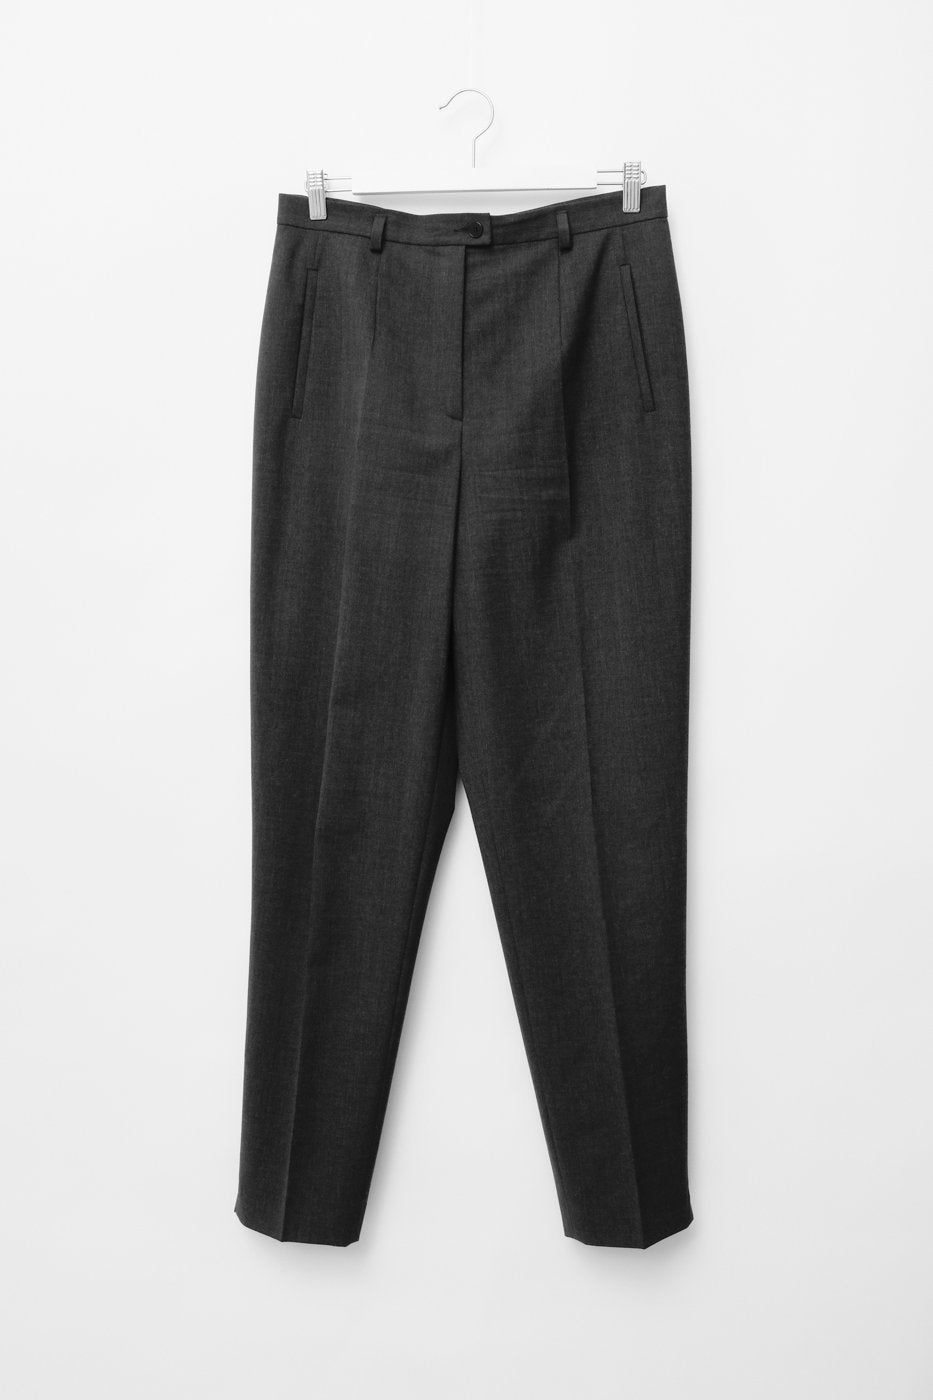 0316_WOOL ANTHRACIT HIGH WAIST PANTS